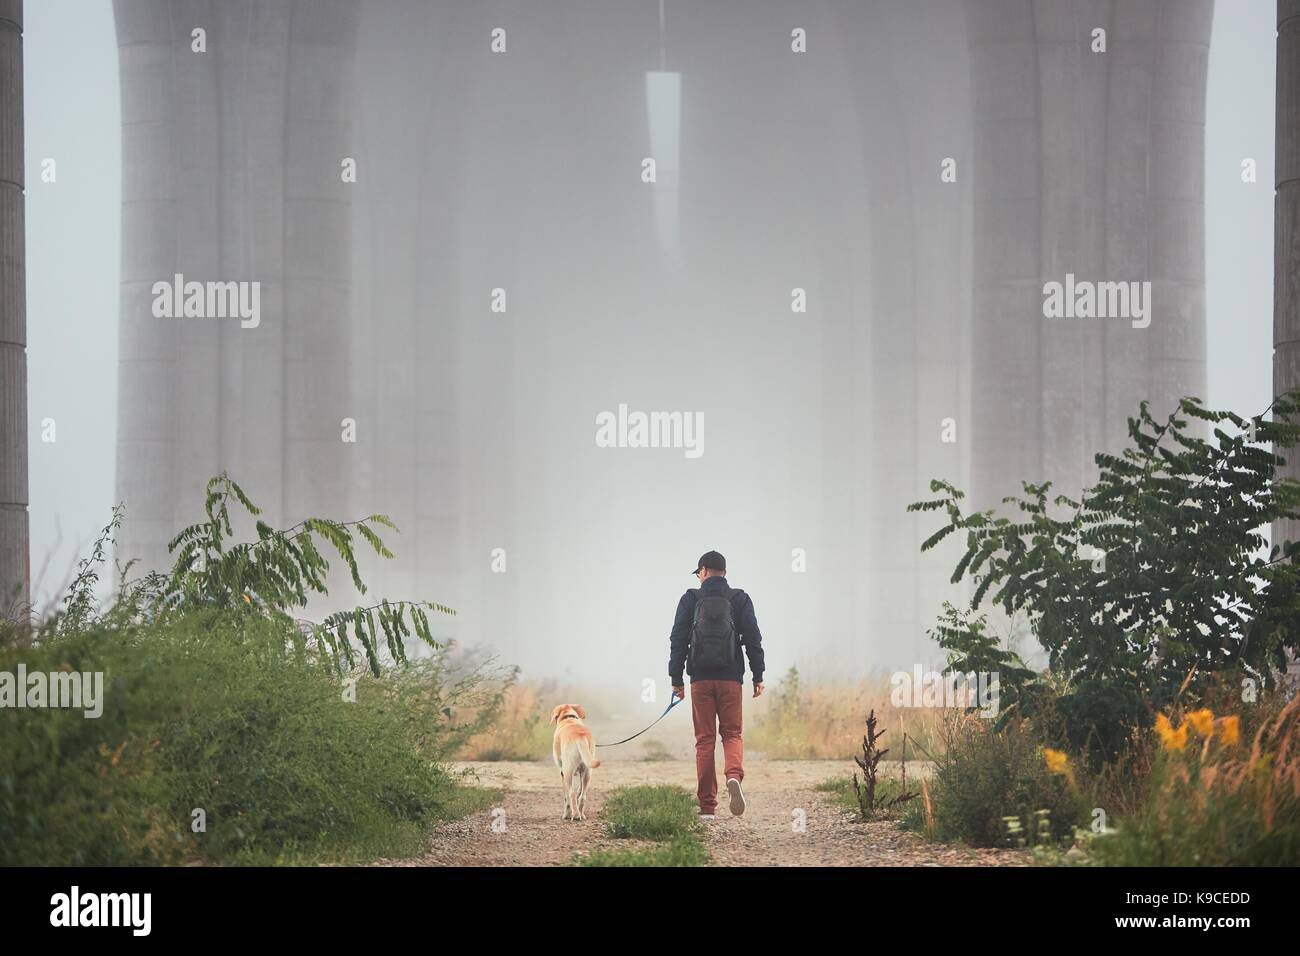 Man with dog under highway bridge in mysterious morning fog. Prague, Czech Republic - Stock Image